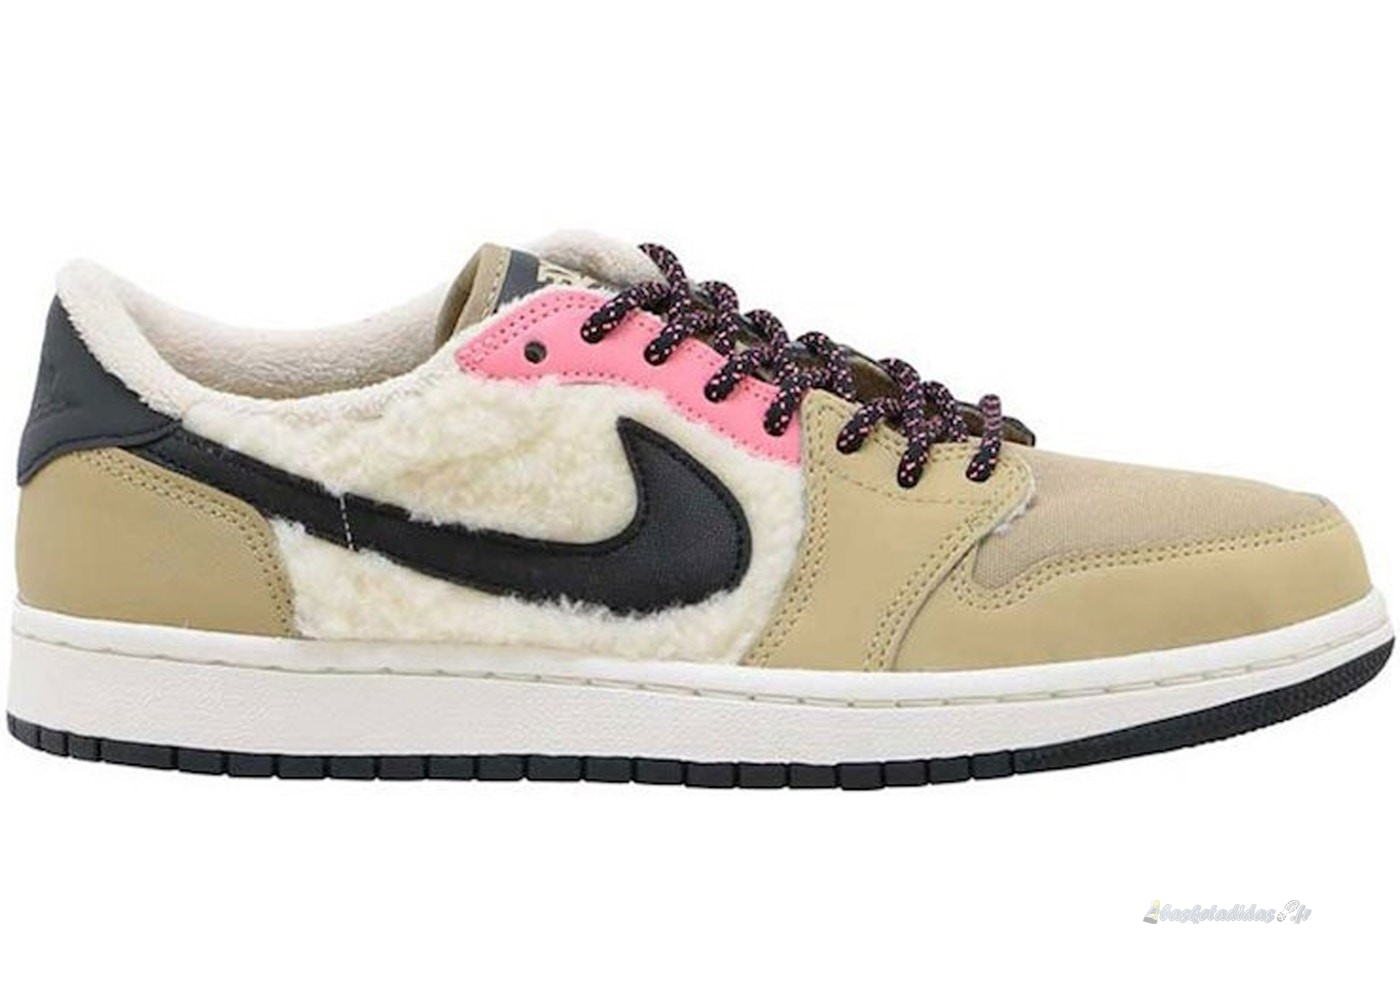 Chaussure de Basket Air Jordan 1 Femme Retro Low Utility Pack Beige (aq0828-200)